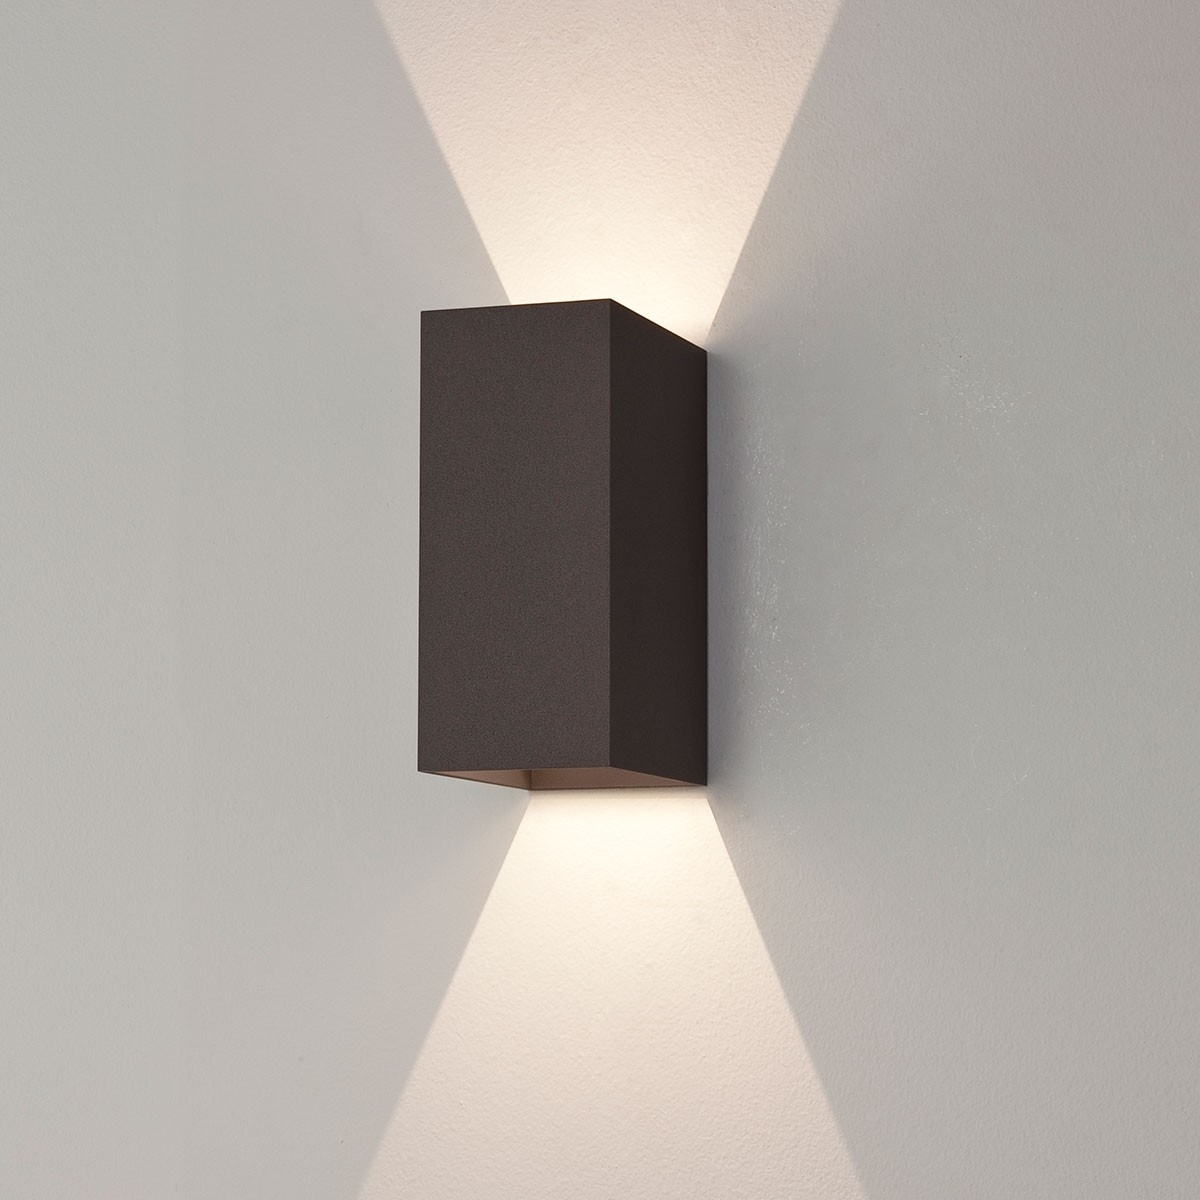 Trendy Outdoor Led Wall Lights – Outdoor Designs Intended For Black Outdoor Led Wall Lights (View 5 of 20)